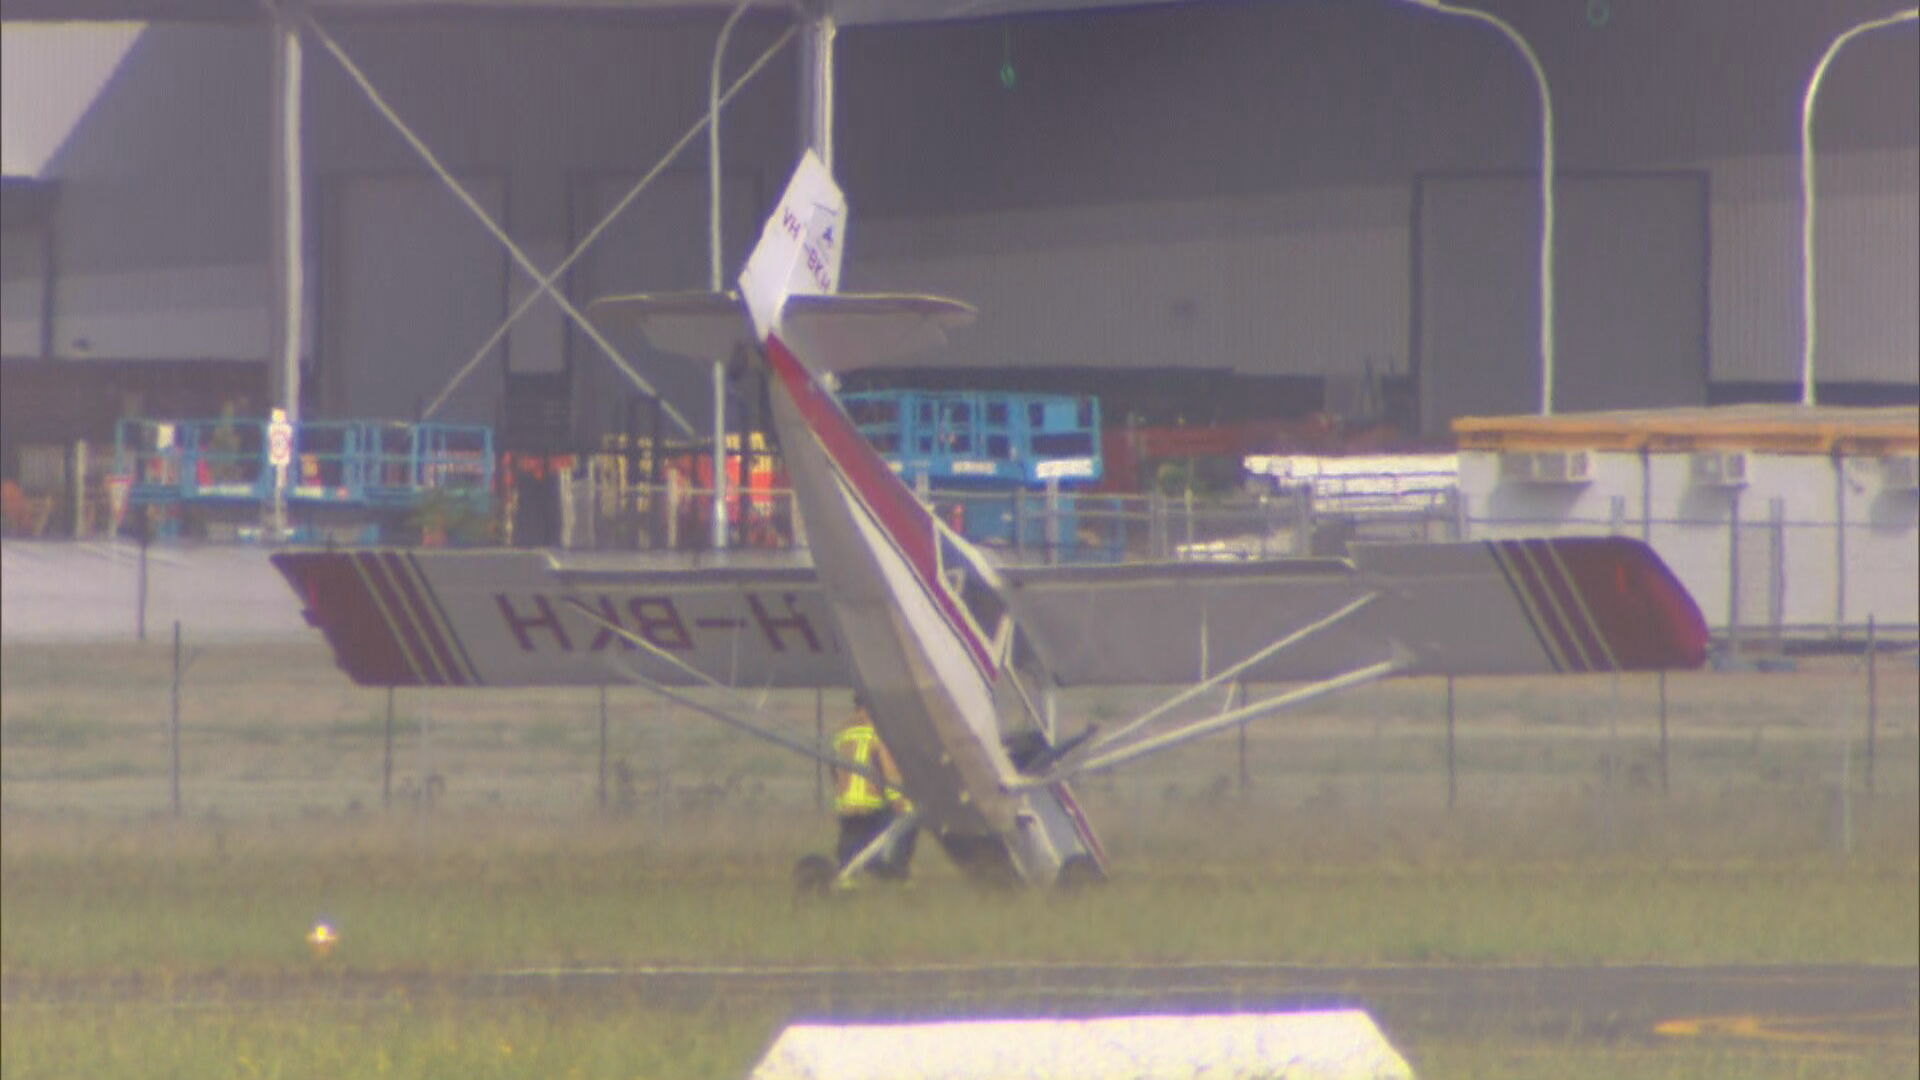 Pilot crash lands light plane on its nose at Bankstown Airport